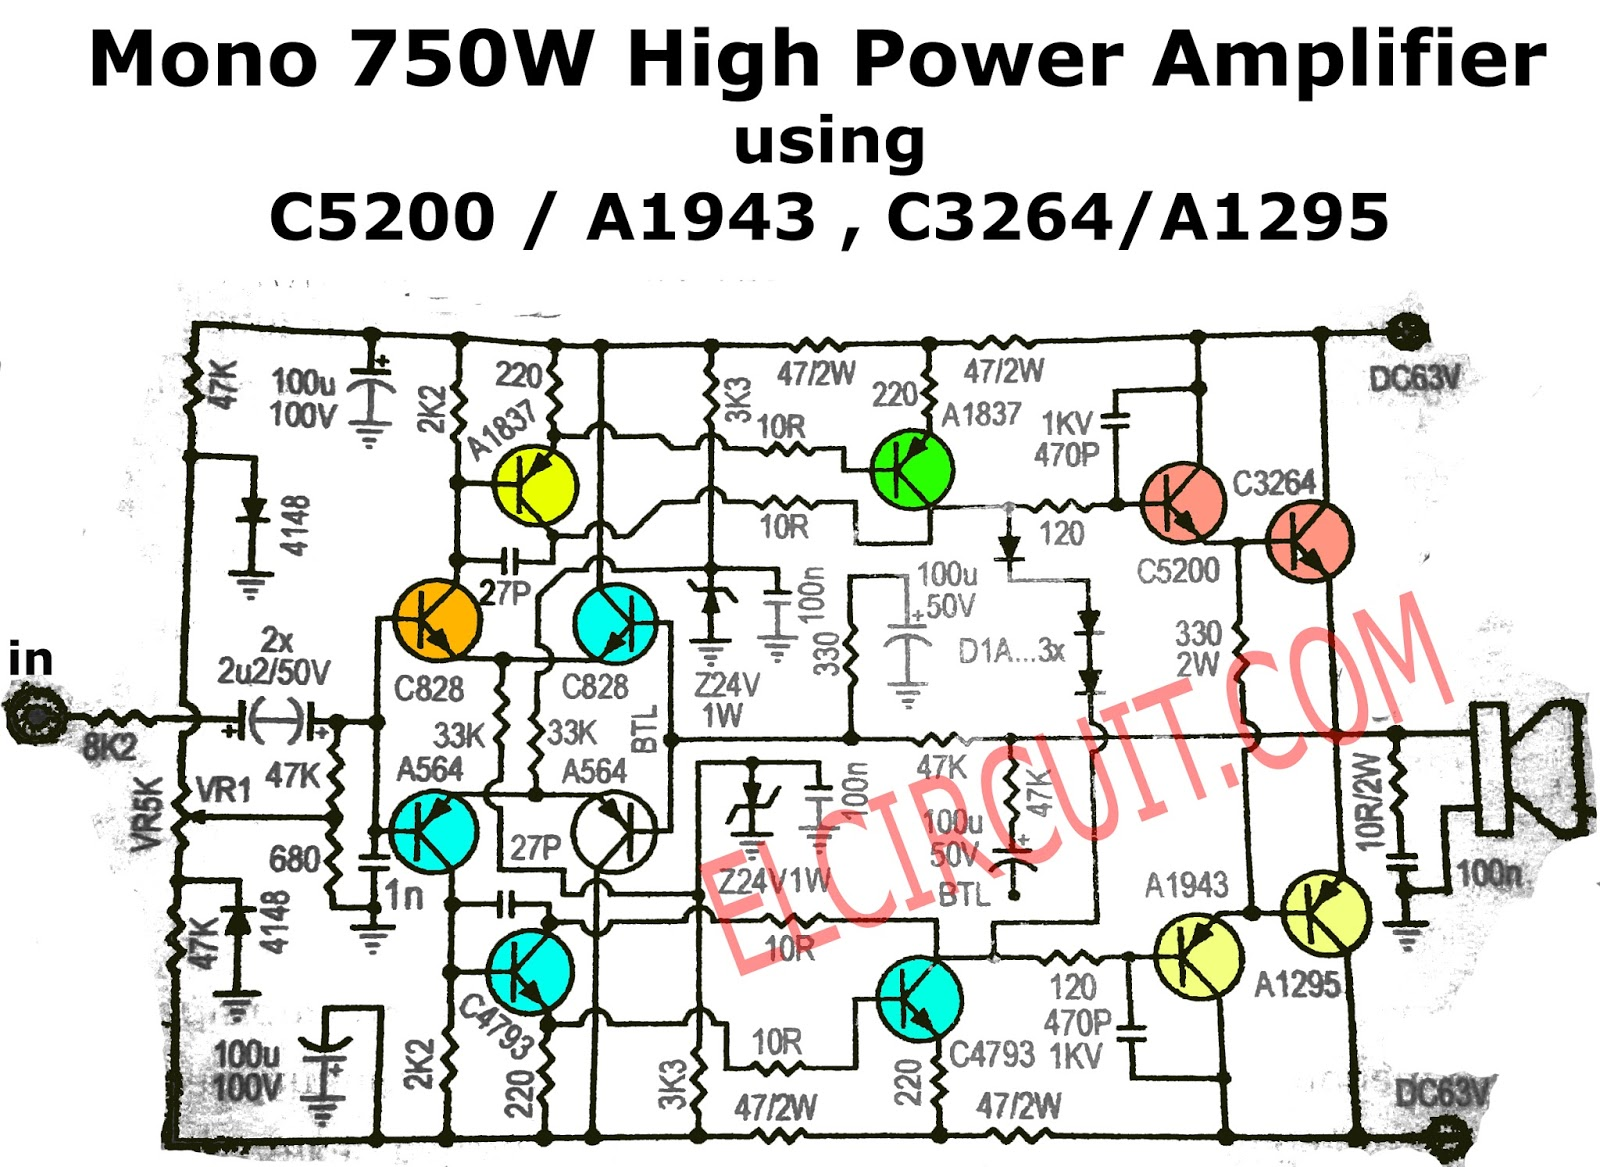 2000w power amplifier circuit diagram 2003 international 4300 a c wiring 750w mono schematic and pcb electronic